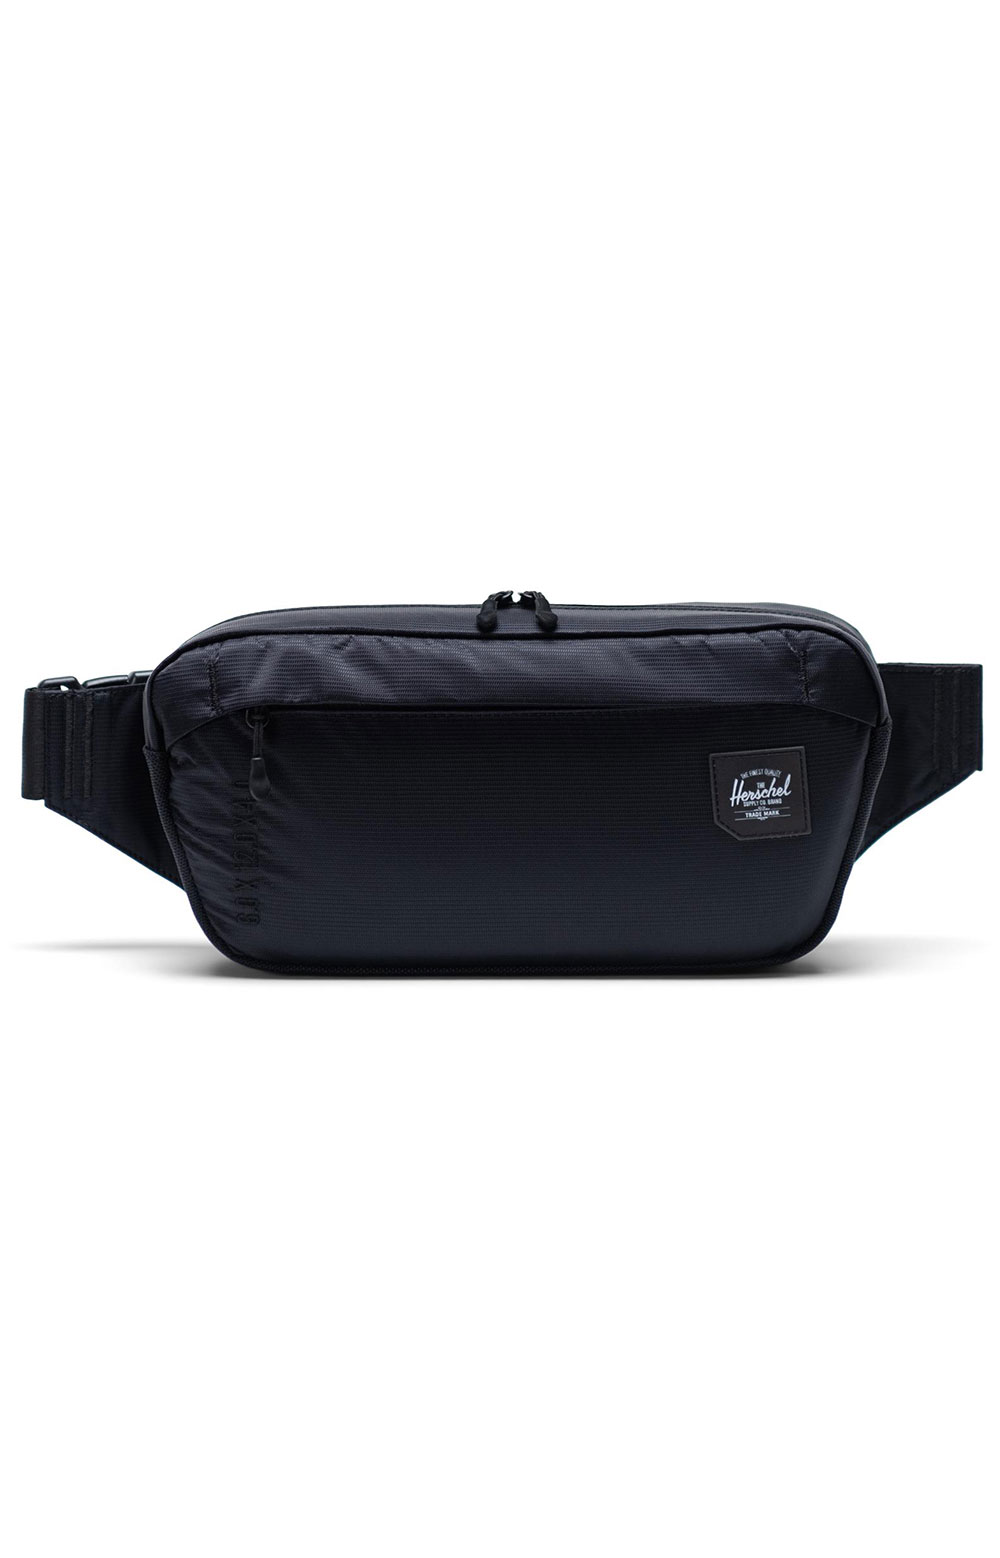 Tour Hip Pack Medium - Black